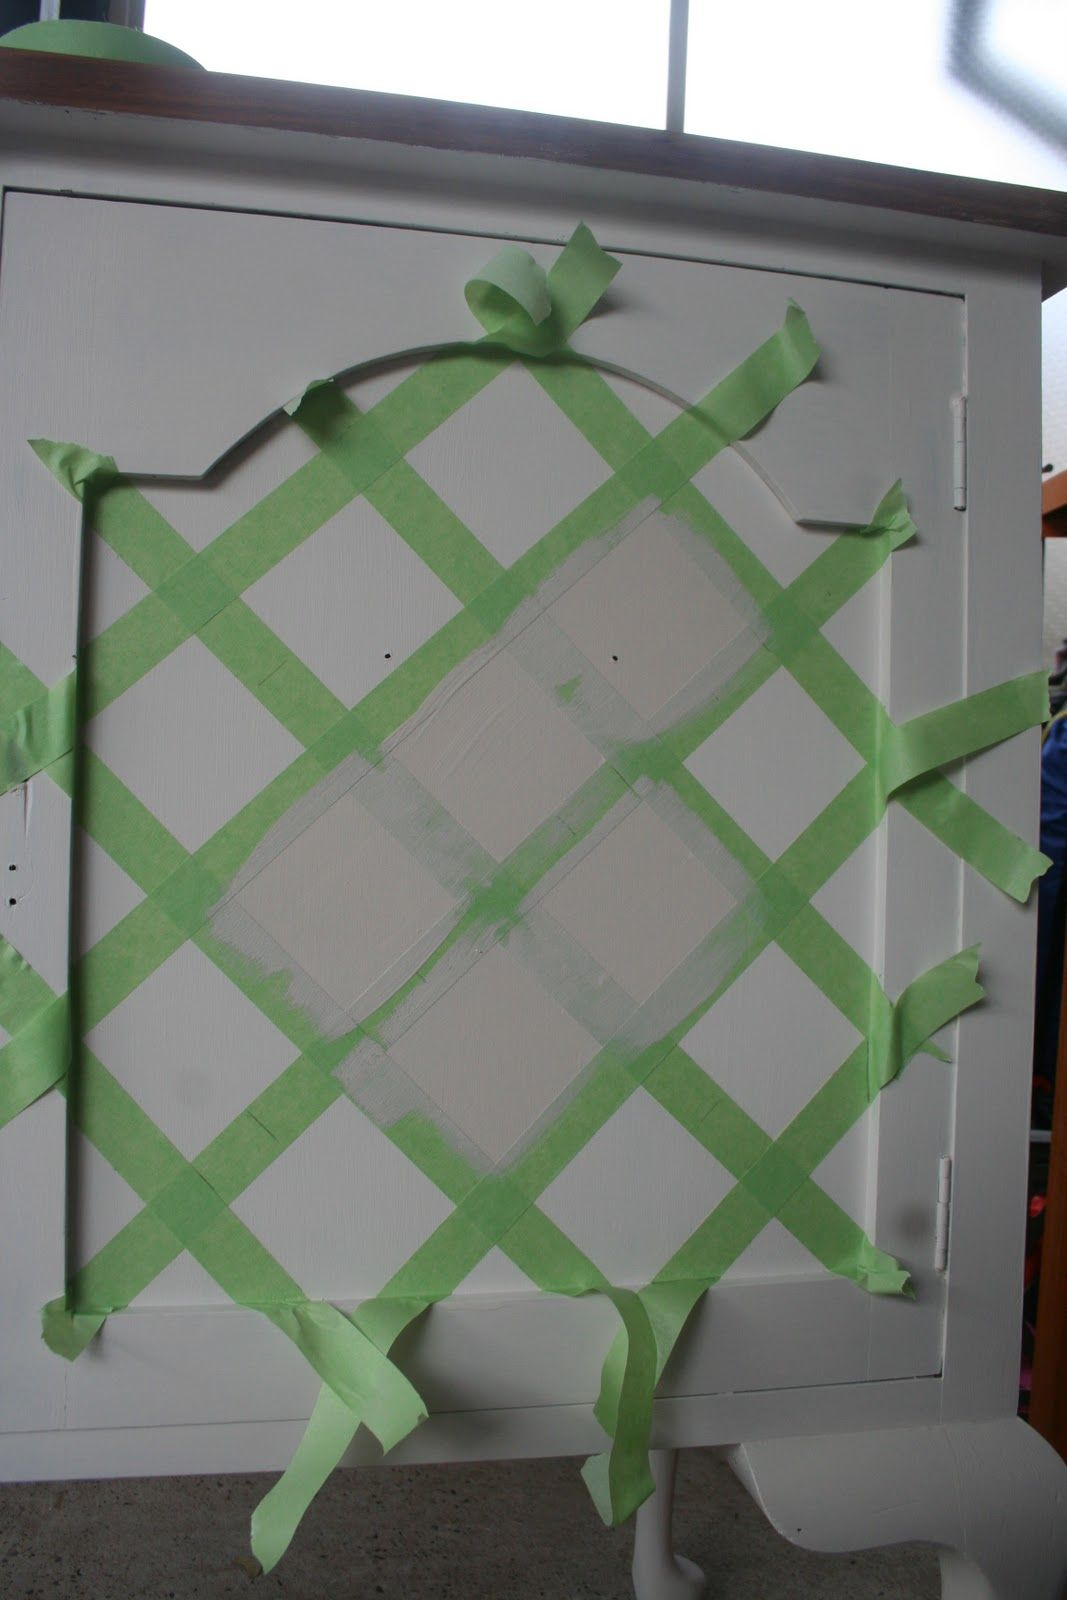 Painters tape to create trellis pattern, could be tone on tone, or color over woodtone, and then distress (maybe the sides of the buffet).